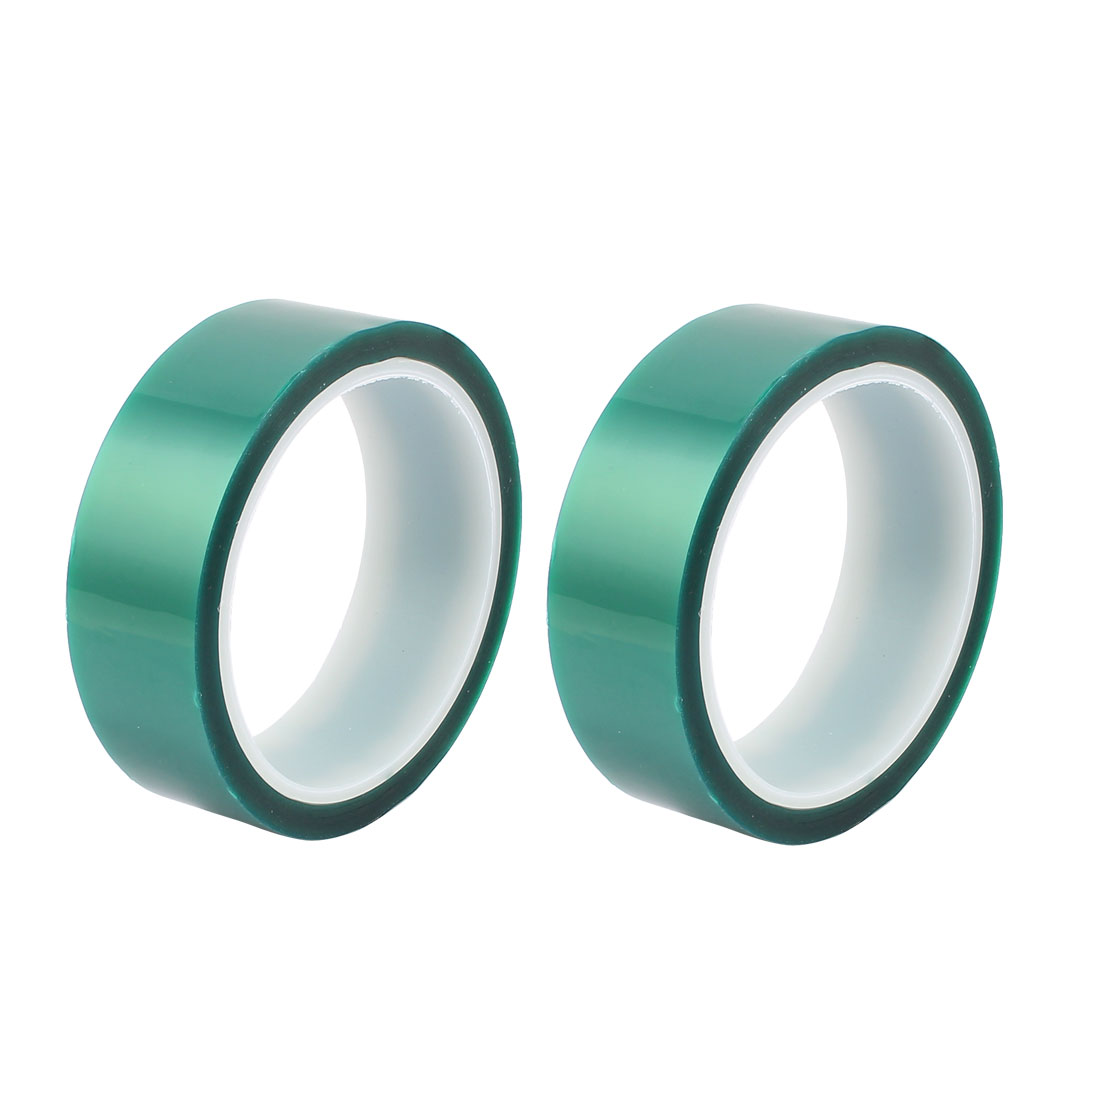 2pcs 30mm Width 33M Long Green PET High Temperature Heat Resistant PCB Solder Tape